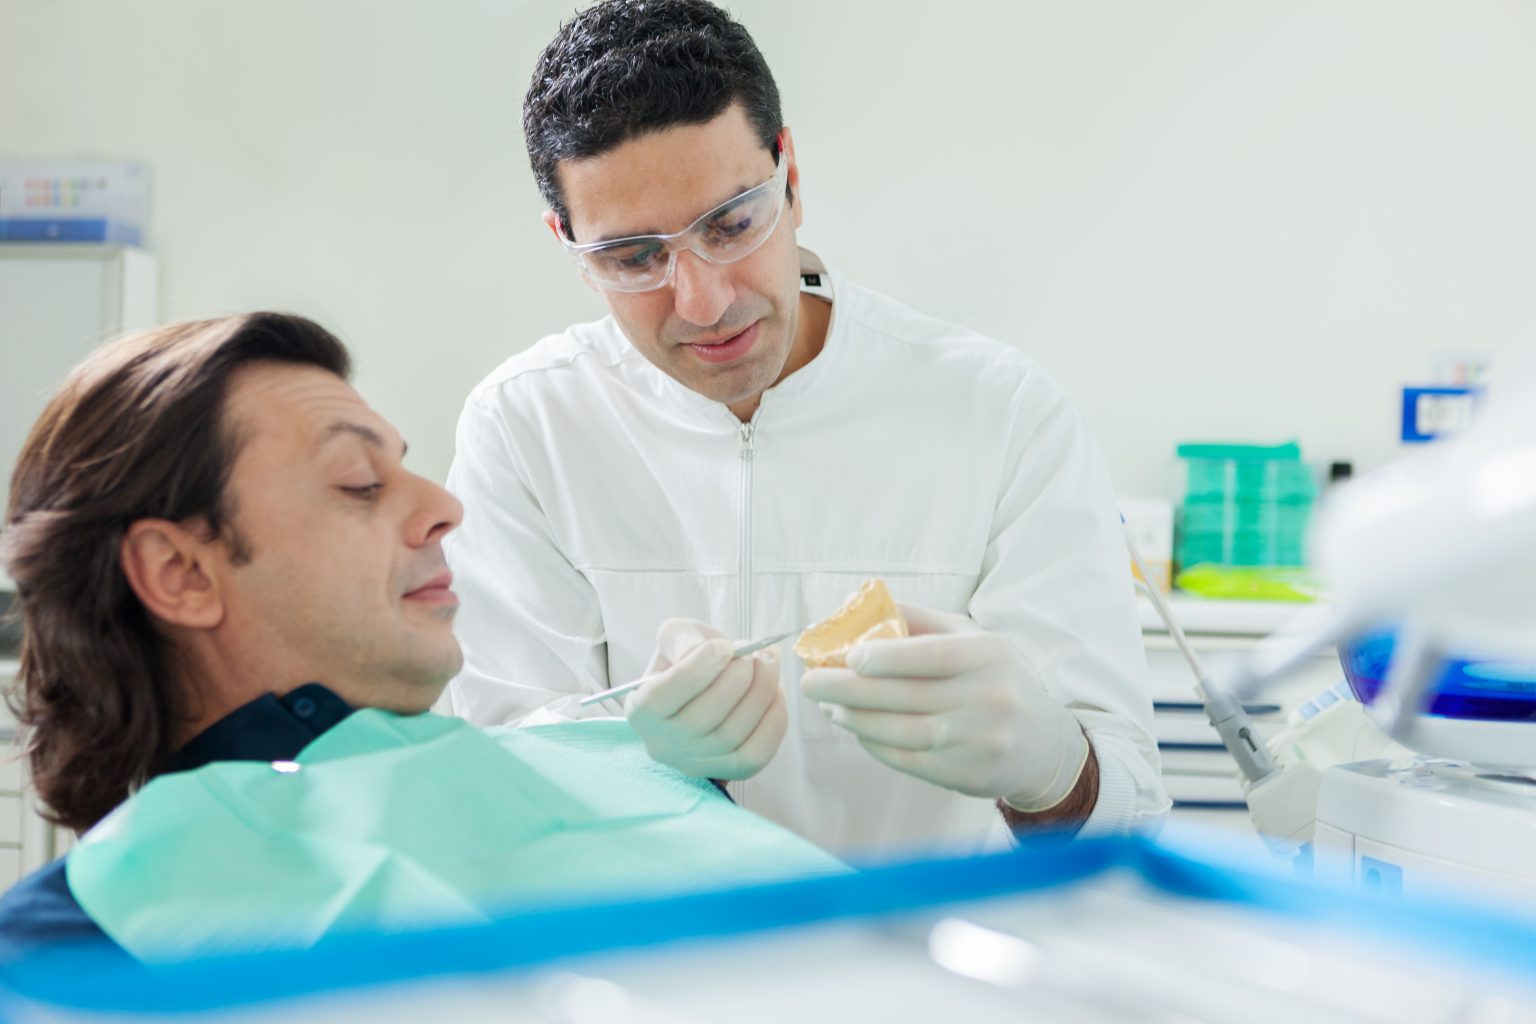 Dentist Is Showing A Plaster Model To His Patient